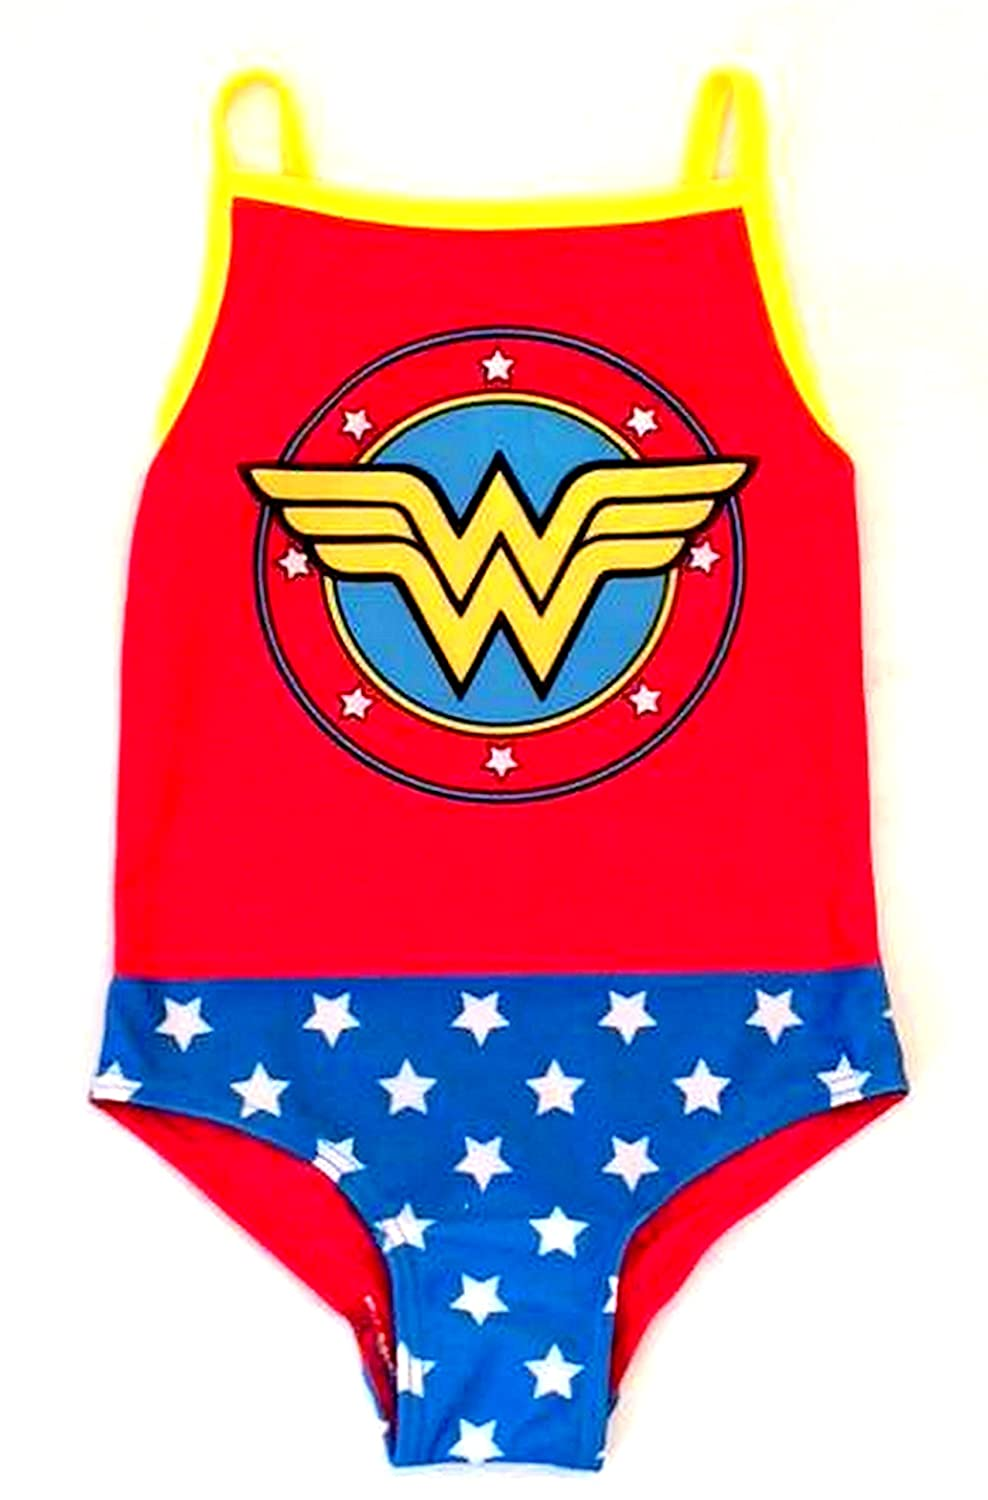 DC Comics Girls Wonder Woman Swimsuit, Swimming Costume - Ages 2/3, 3/4,4/5, 5/6 yrs